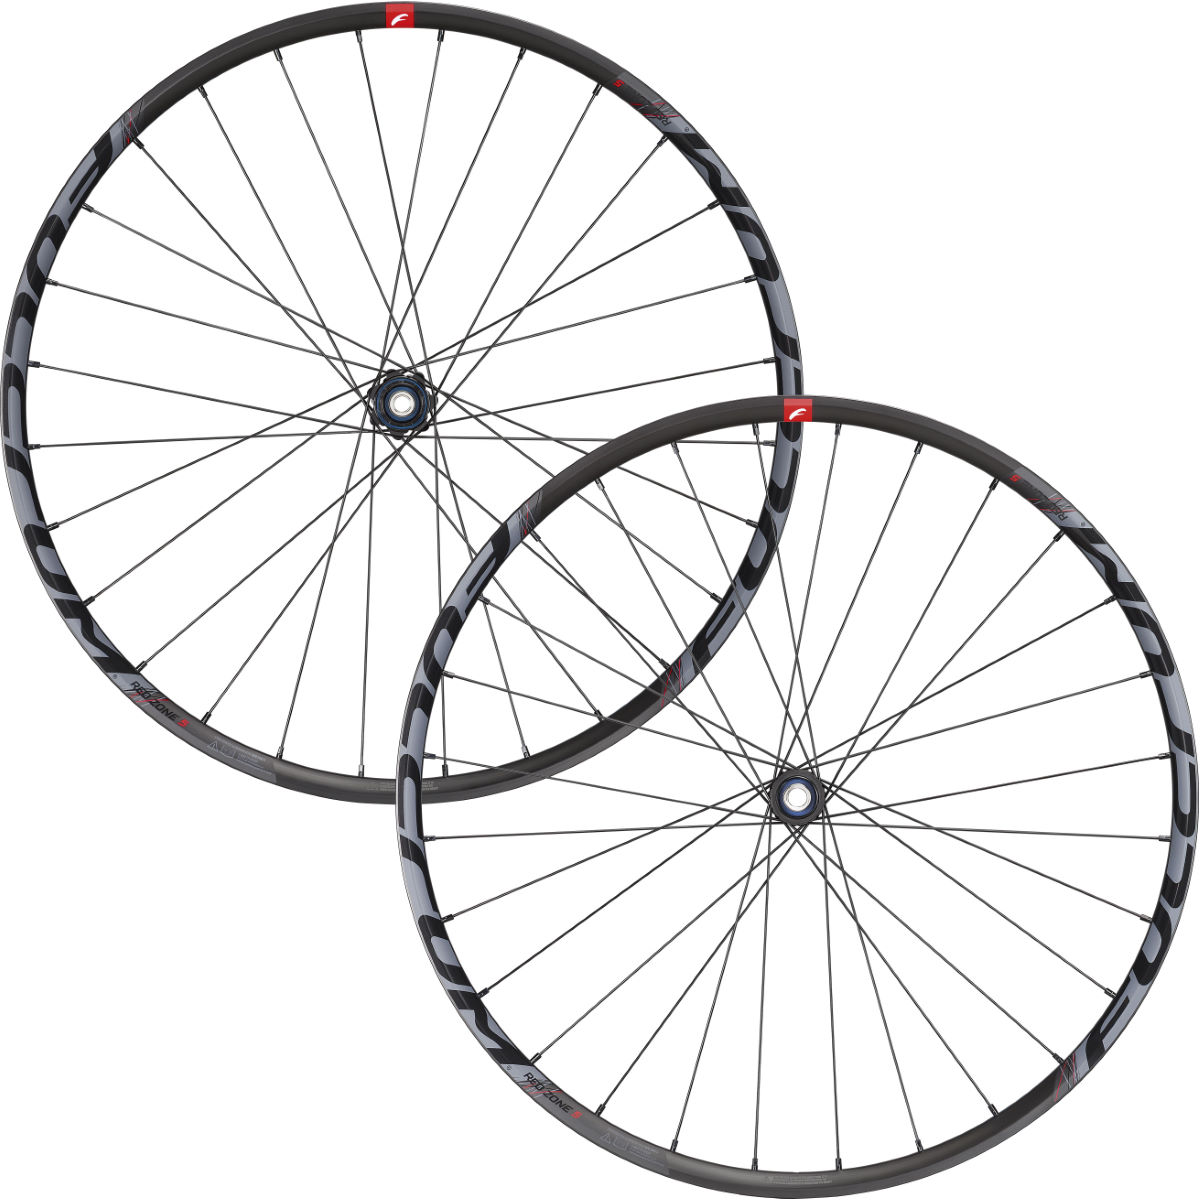 Fulcrum RED ZONE 5 MTB Wheelset - Ruedas de competición